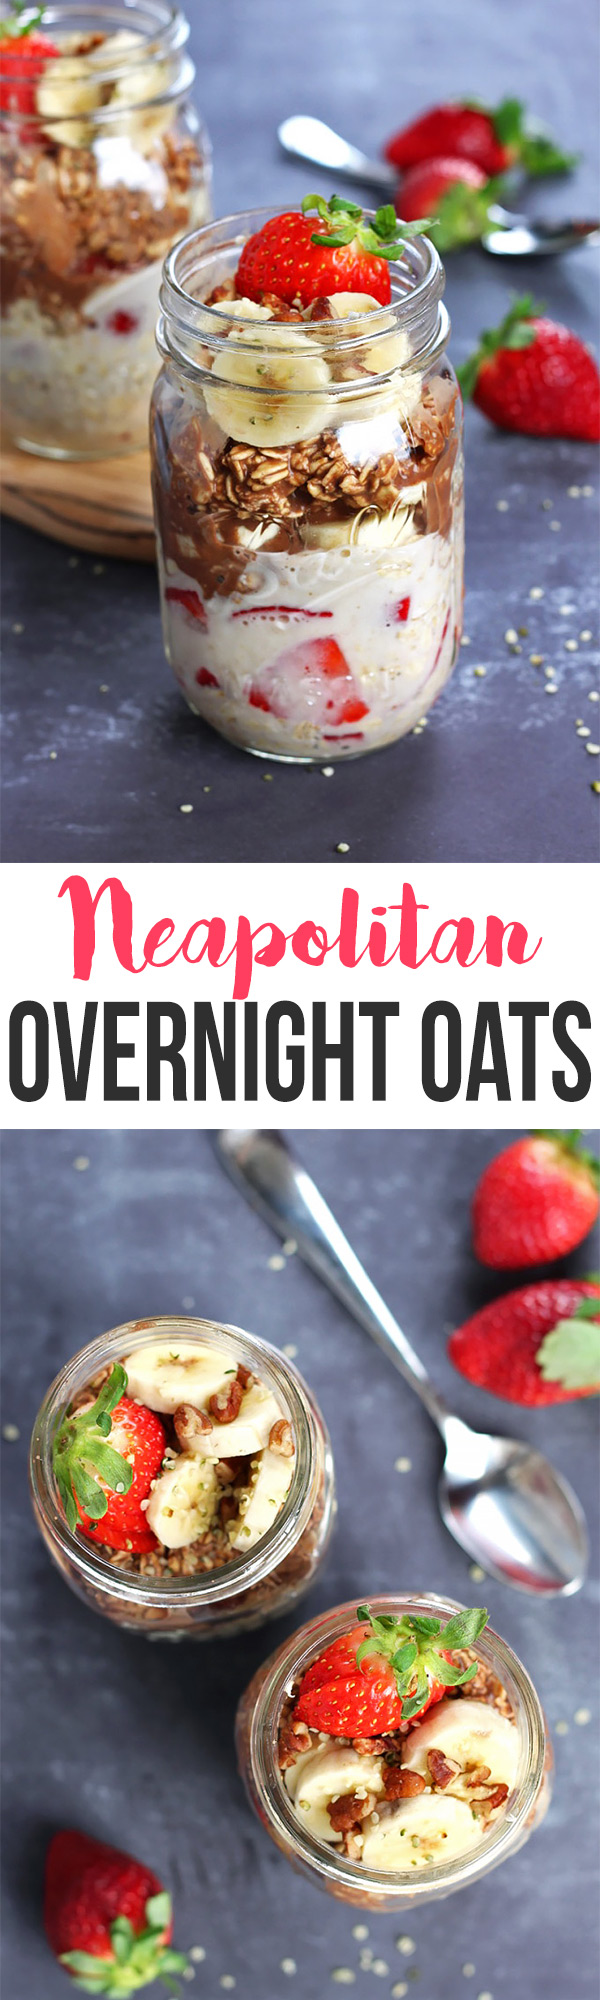 Put a fun twist on your breakfast with these Neapolitan Overnight Oats! They're sweet, easy to make, and a healthy alternative to the ice cream flavor. It's a breakfast win!